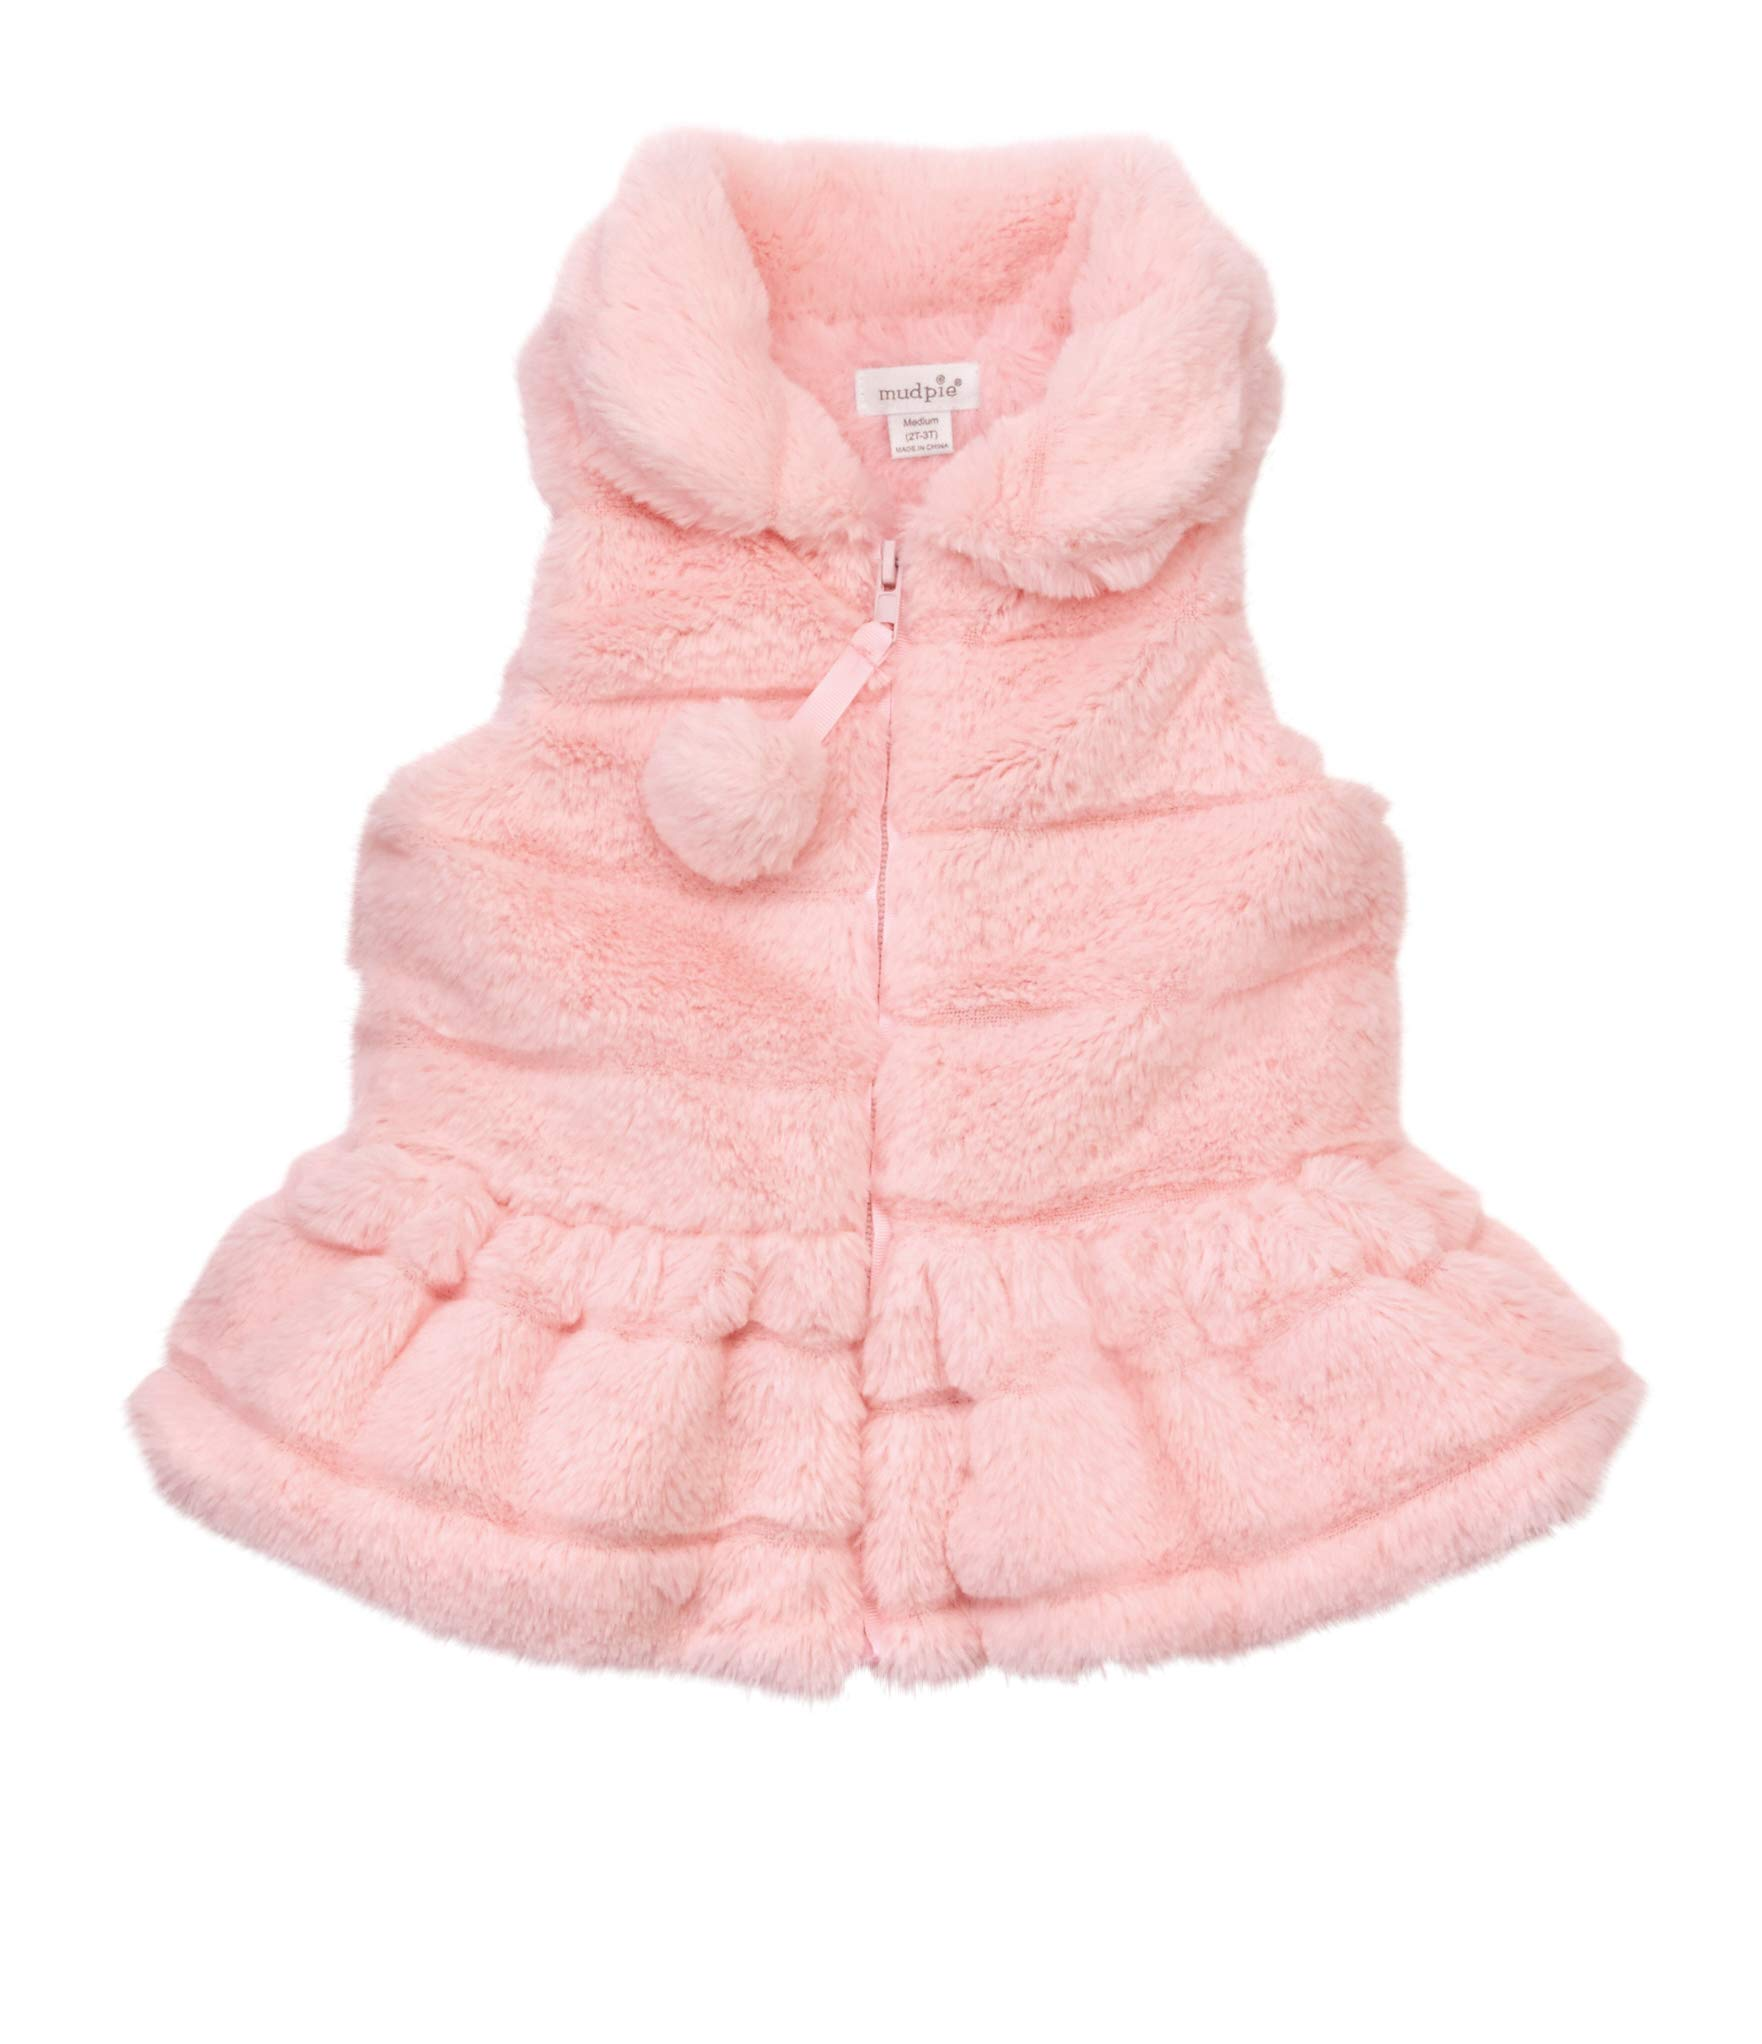 Mud Pie Baby Girl's Ruffle Fur Vest (Infant/Toddler) Pink Small by Mud Pie